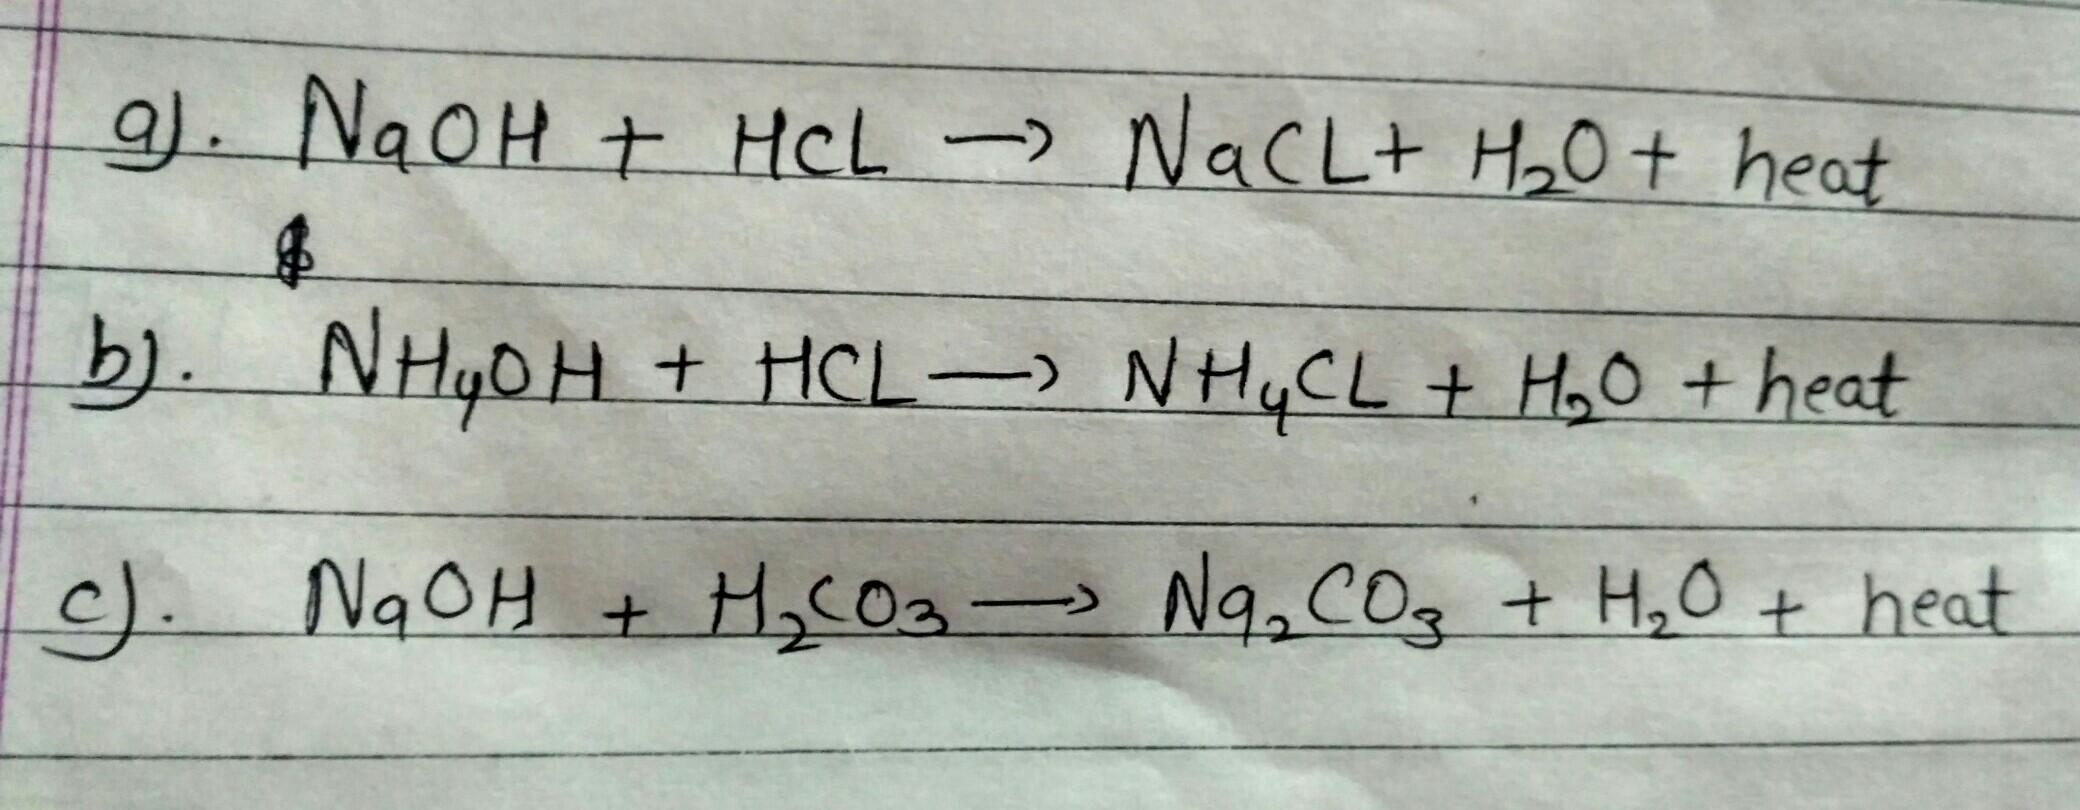 fill up the neutralization reaction  - Brainly in